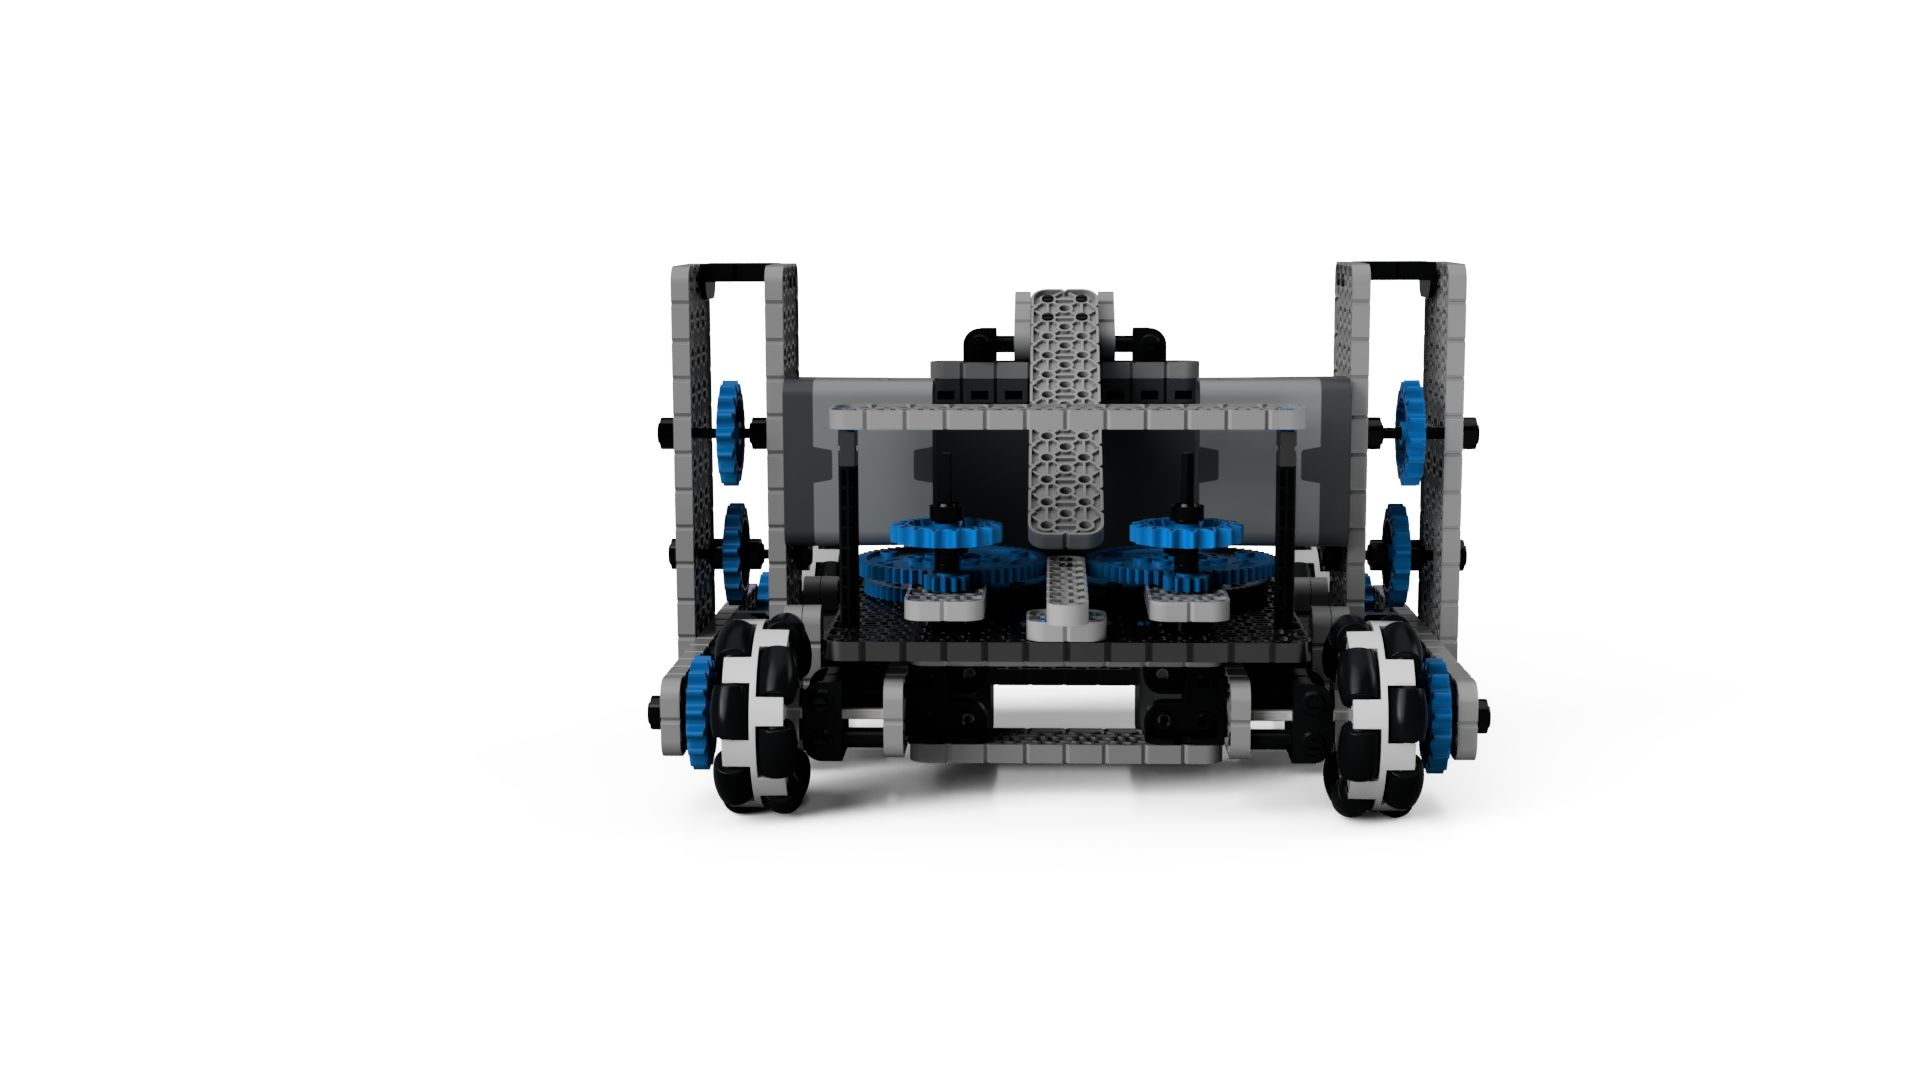 Vex-iq---ball-trigger-robot-2019-jun-05-08-29-57pm-000-customizedview1275556741-png-3500-3500